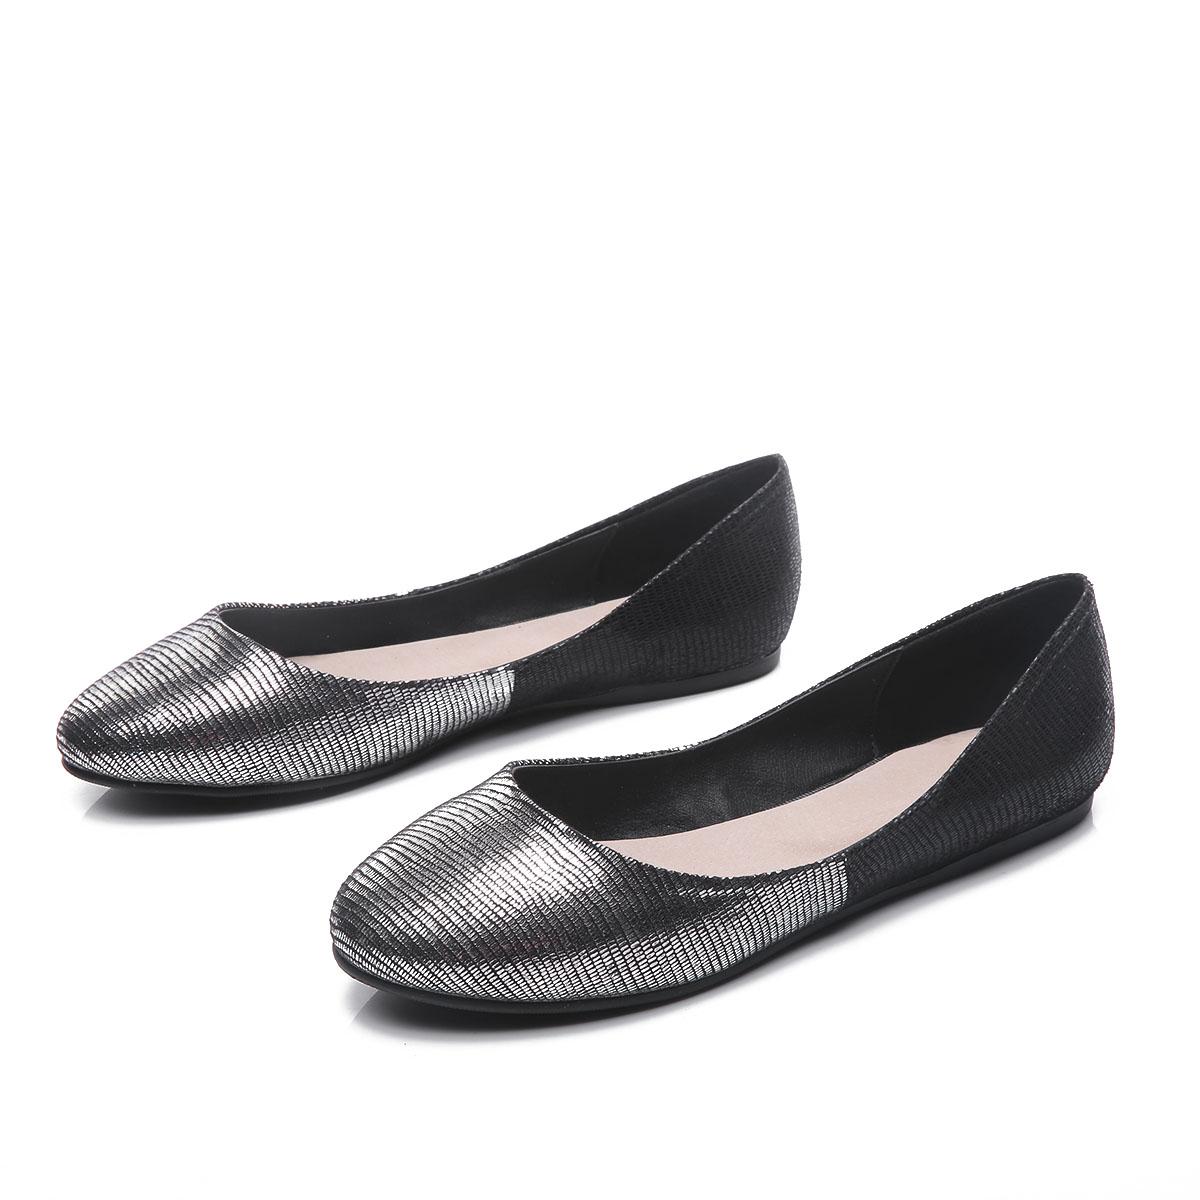 Ballet Flats Women Flat Shoes Woman Inner Material Genuine Leather Casual Shoe Sapato Womens Loafers Zapatos Mujer drfargo spring summer ladies shoes ballet flats women flat shoes woman ballerinas pointed toe sapato womens waved edge loafer